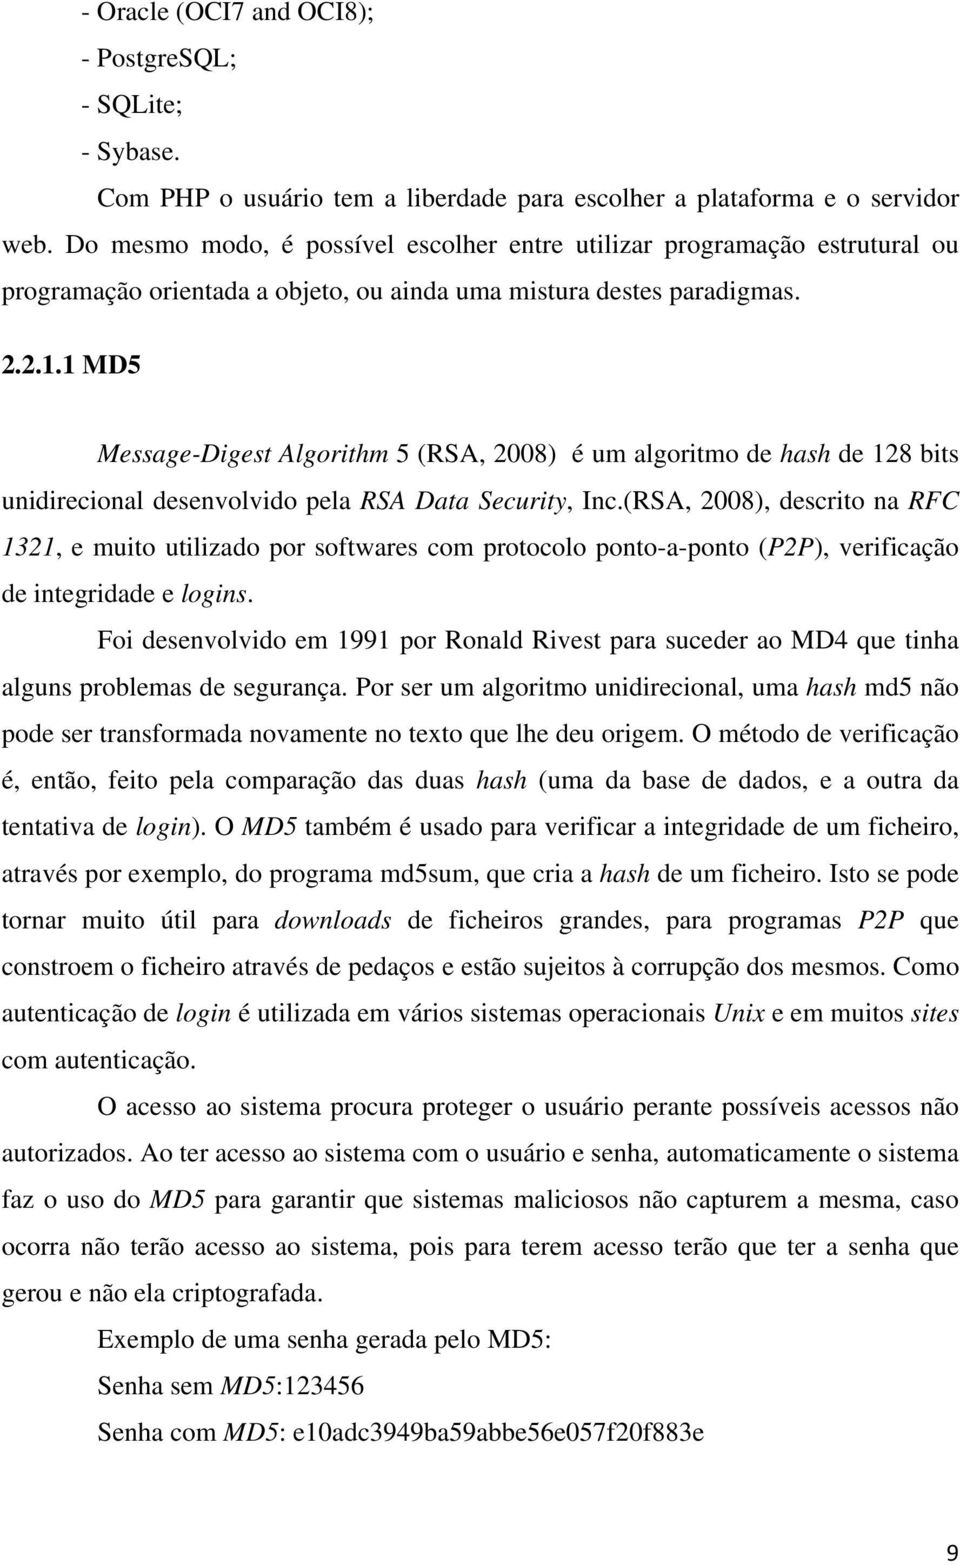 1 MD5 Message-Digest Algorithm 5 (RSA, 2008) é um algoritmo de hash de 128 bits unidirecional desenvolvido pela RSA Data Security, Inc.